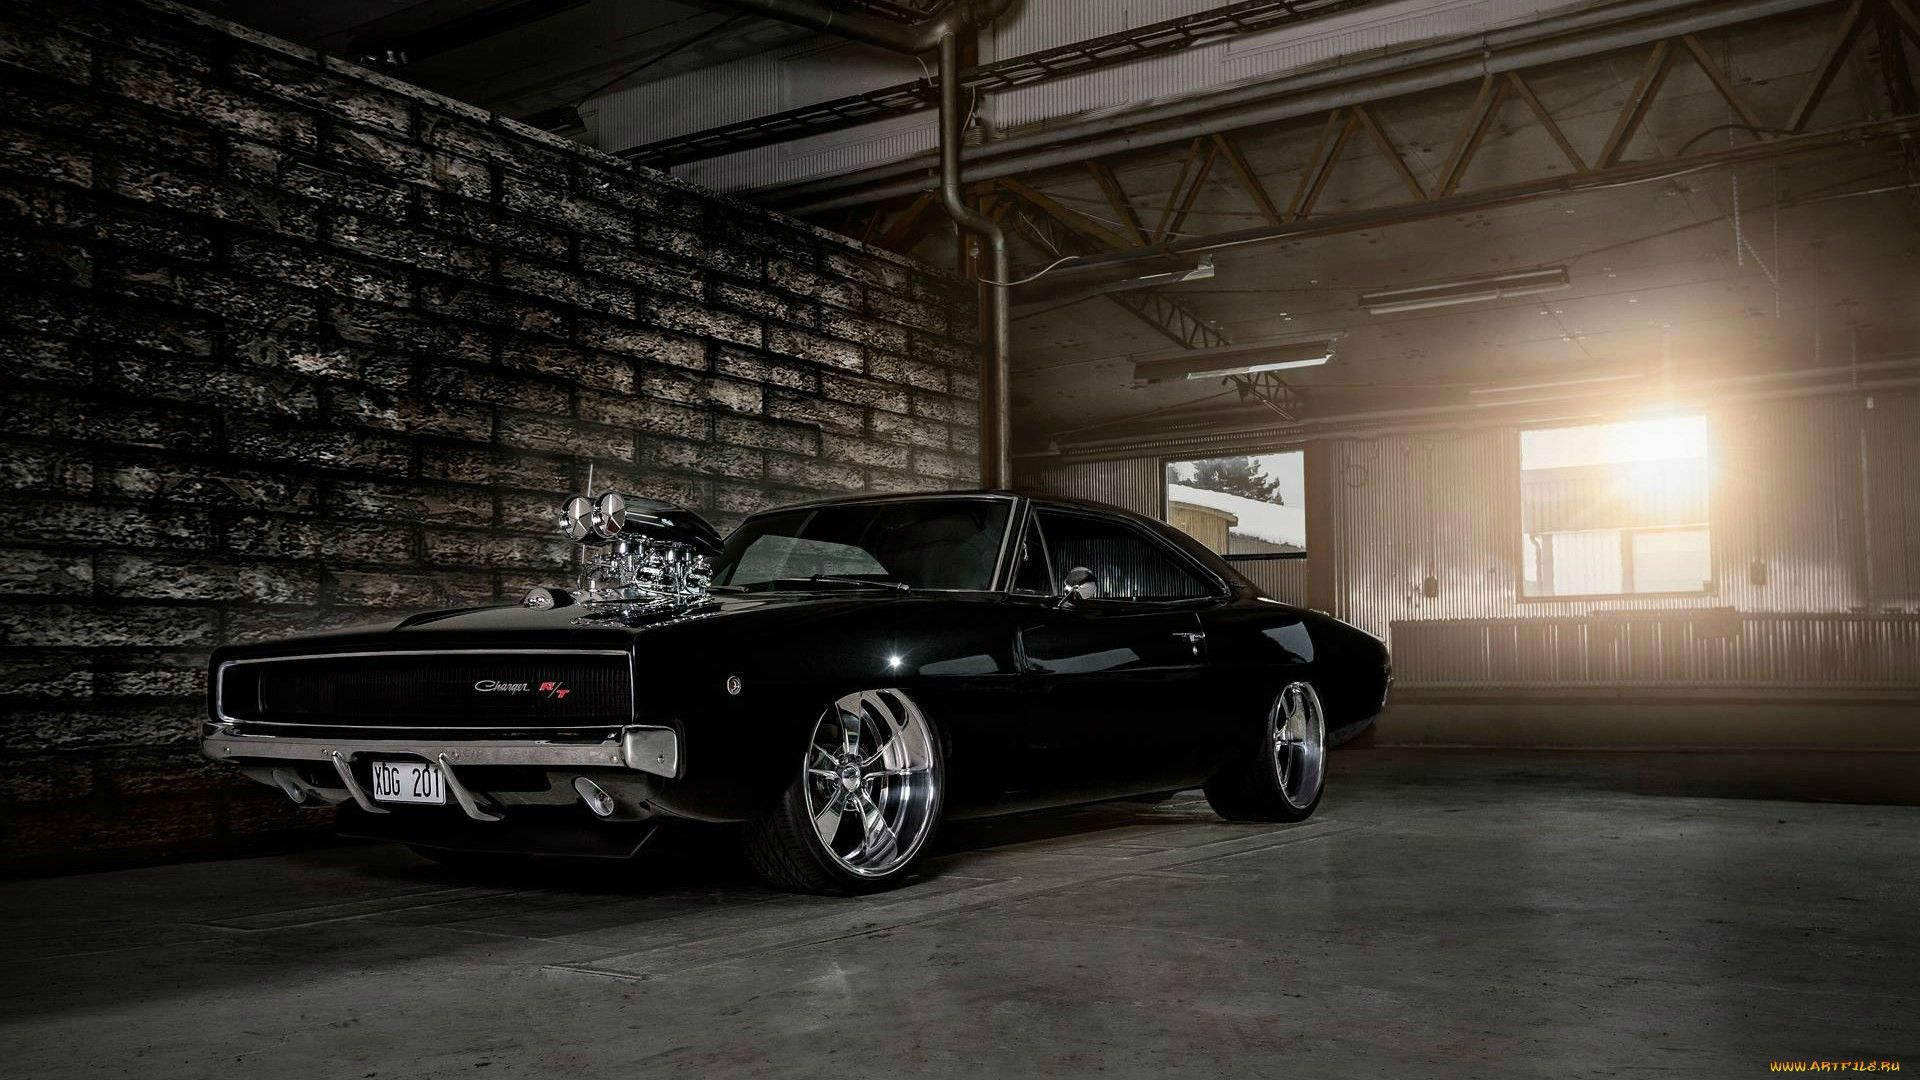 dodge charger car wallpapers hd 1080p. Black Bedroom Furniture Sets. Home Design Ideas